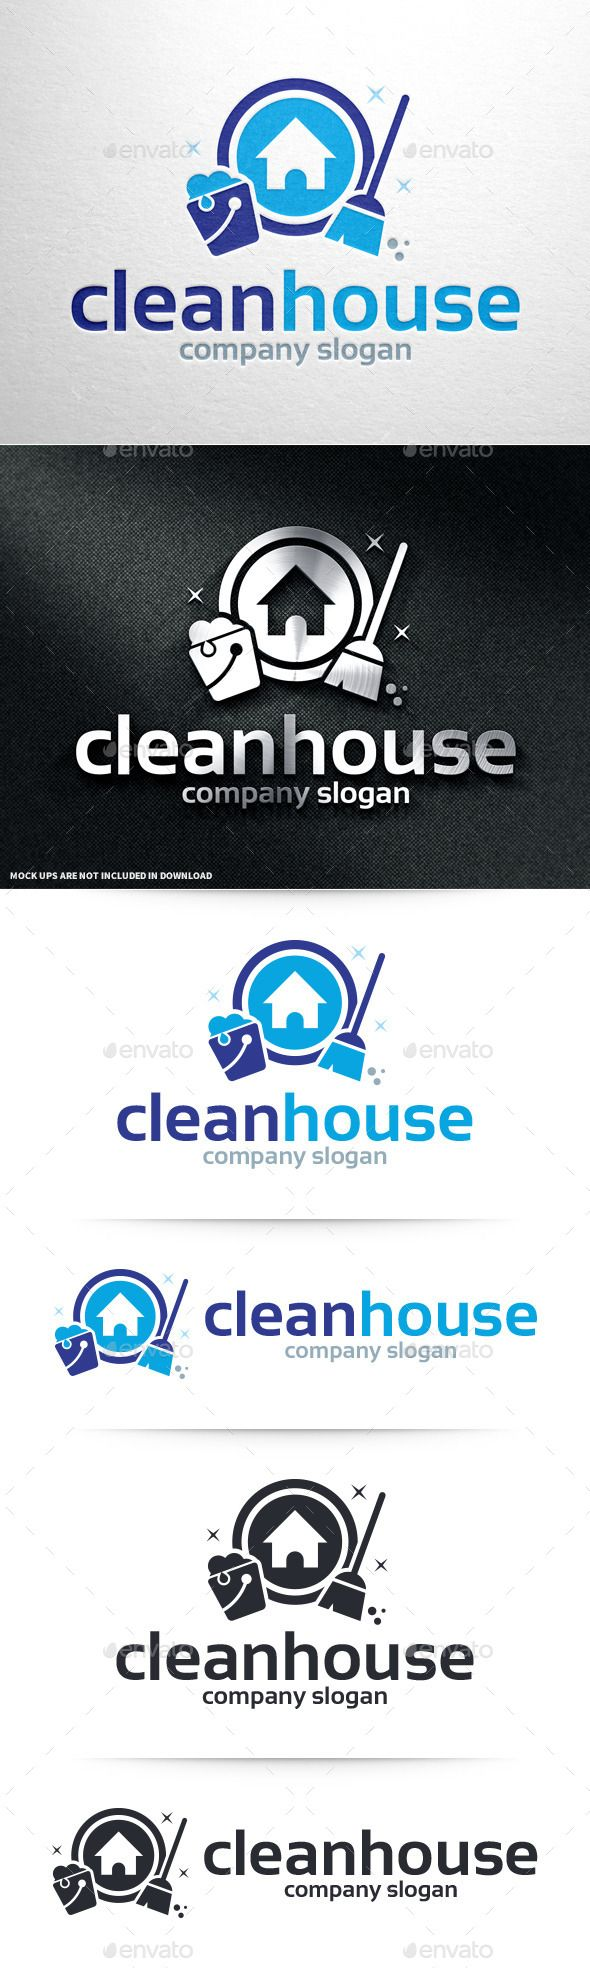 Clean House  - Logo Design Template Vector #logotype Download it here: http://graphicriver.net/item/clean-house-logo-template/10995180?s_rank=423?ref=nesto